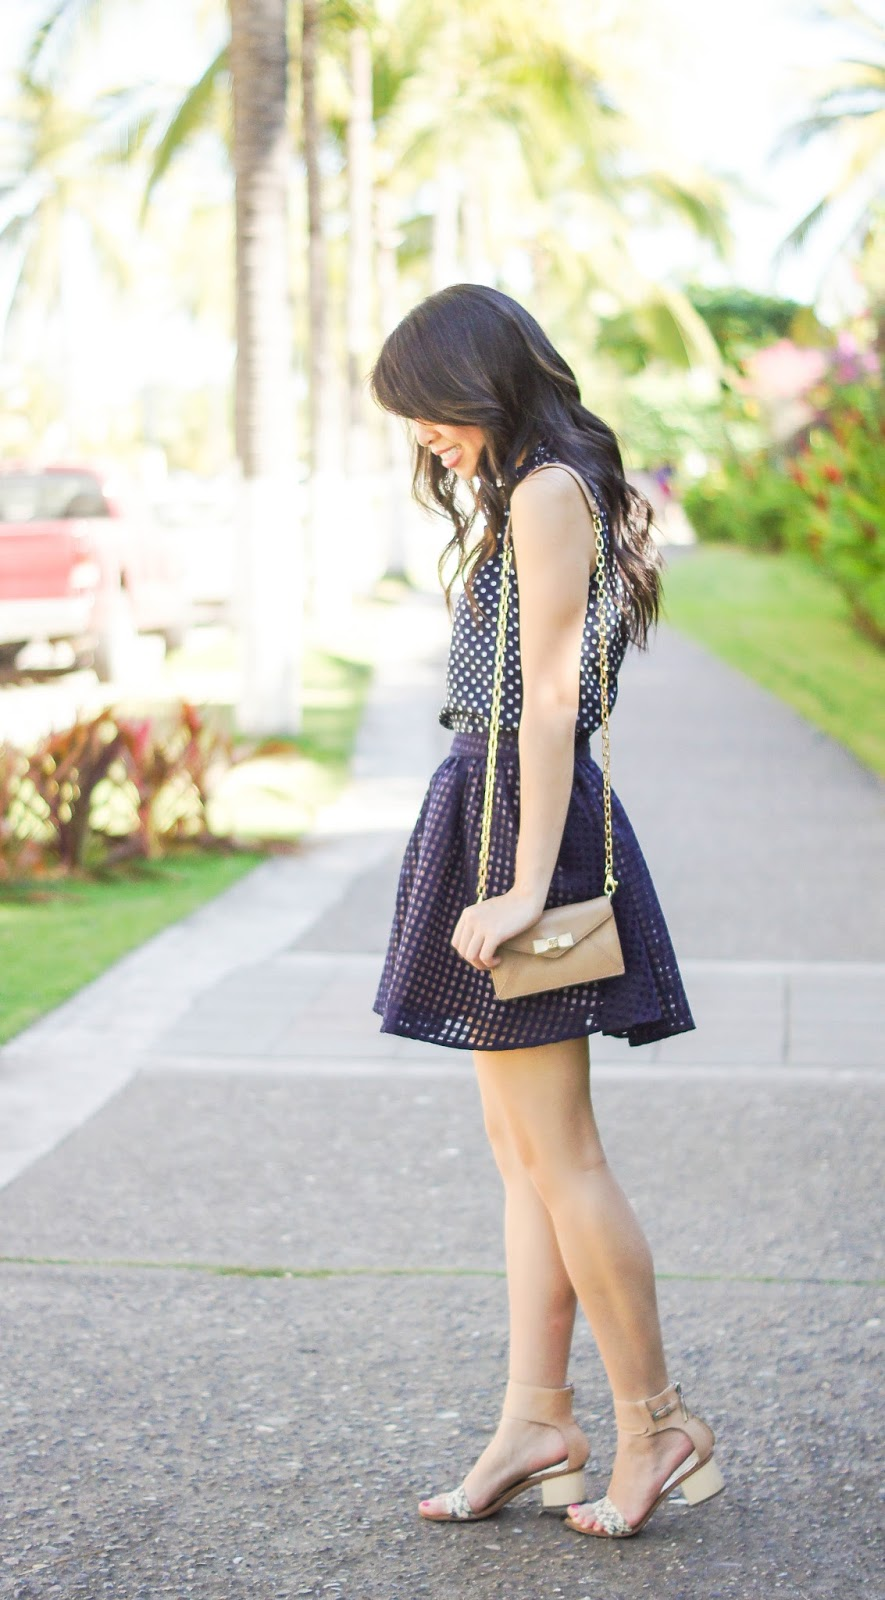 justatinabit-polka-dot-and-skirt